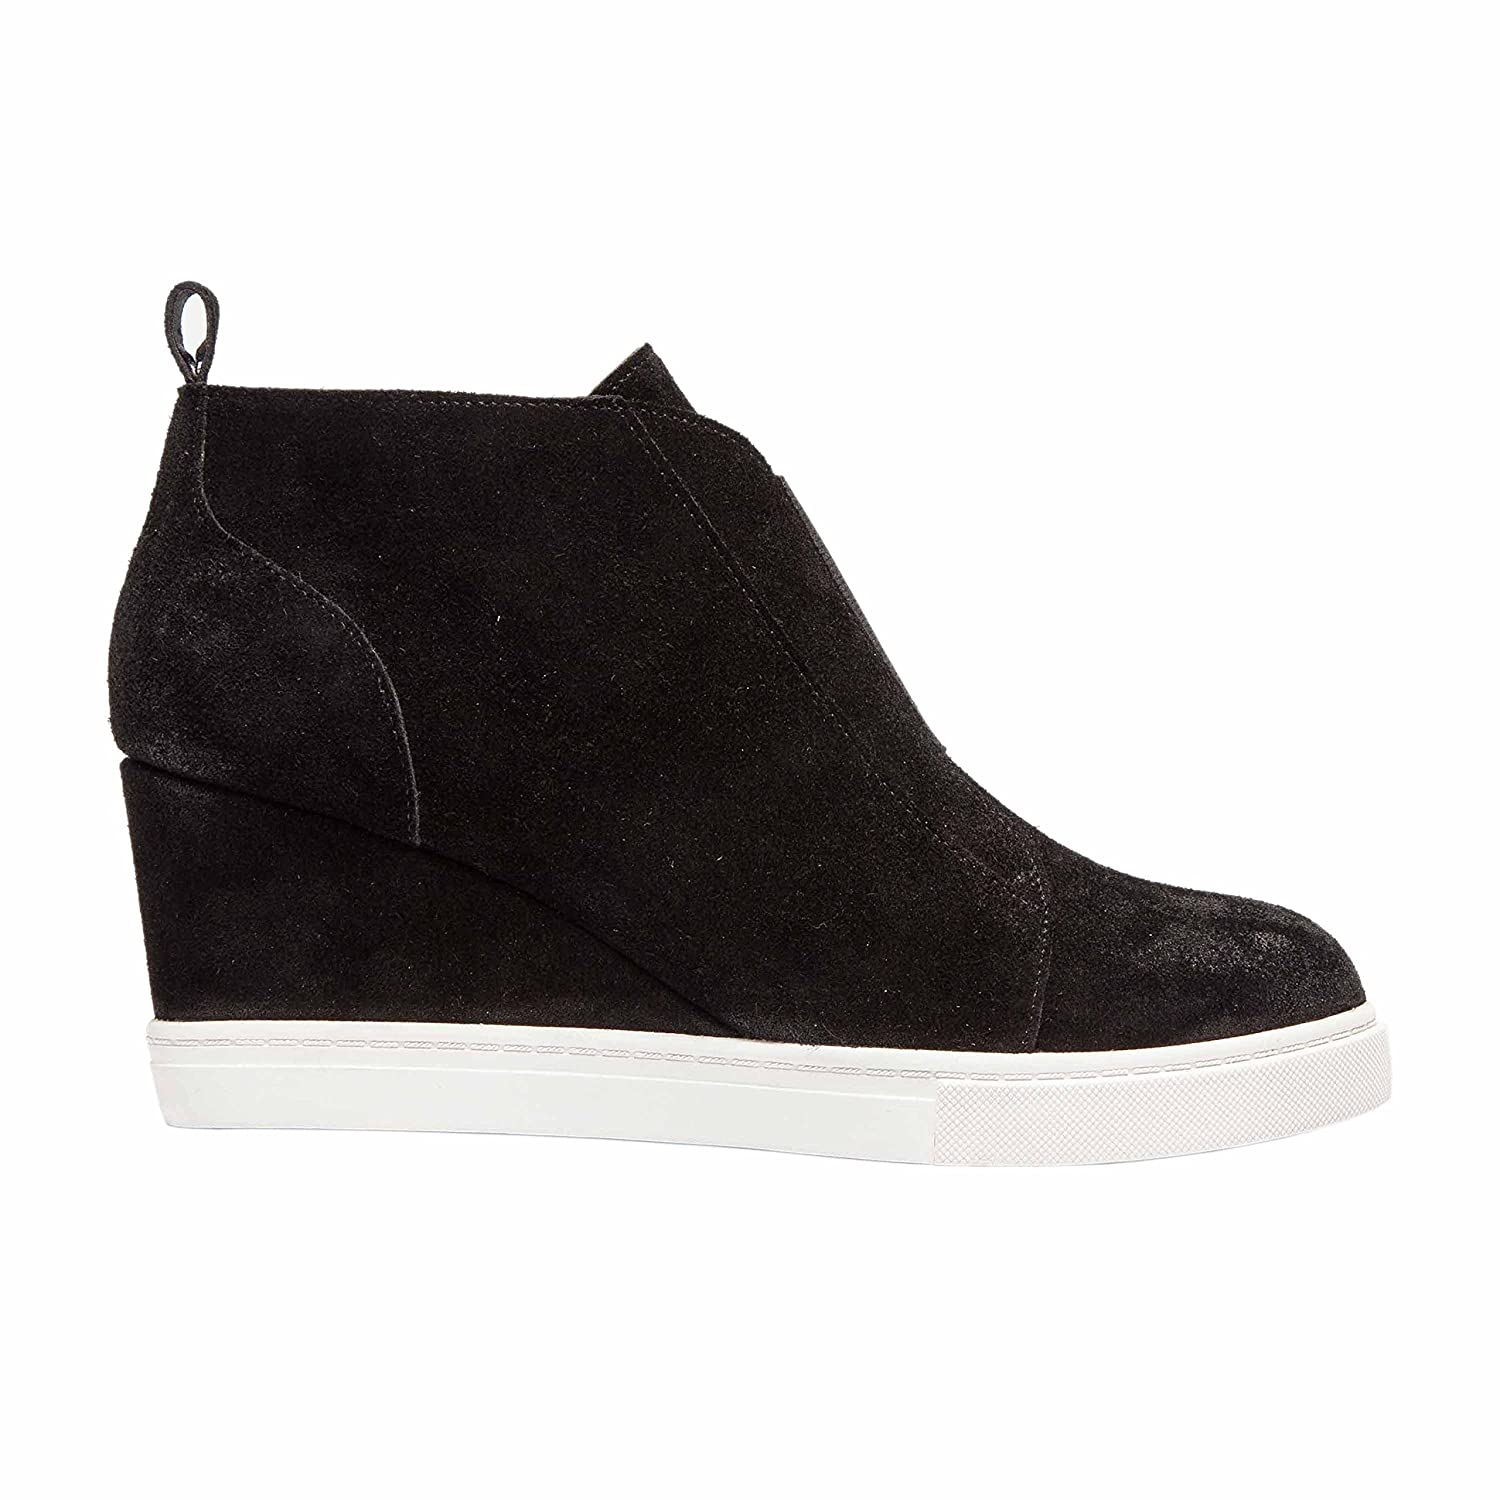 Felicia | Women's Platform Wedge Bootie Sneaker Leather Or Suede B074N9SWCK 10.5 M US|Black Split Suede